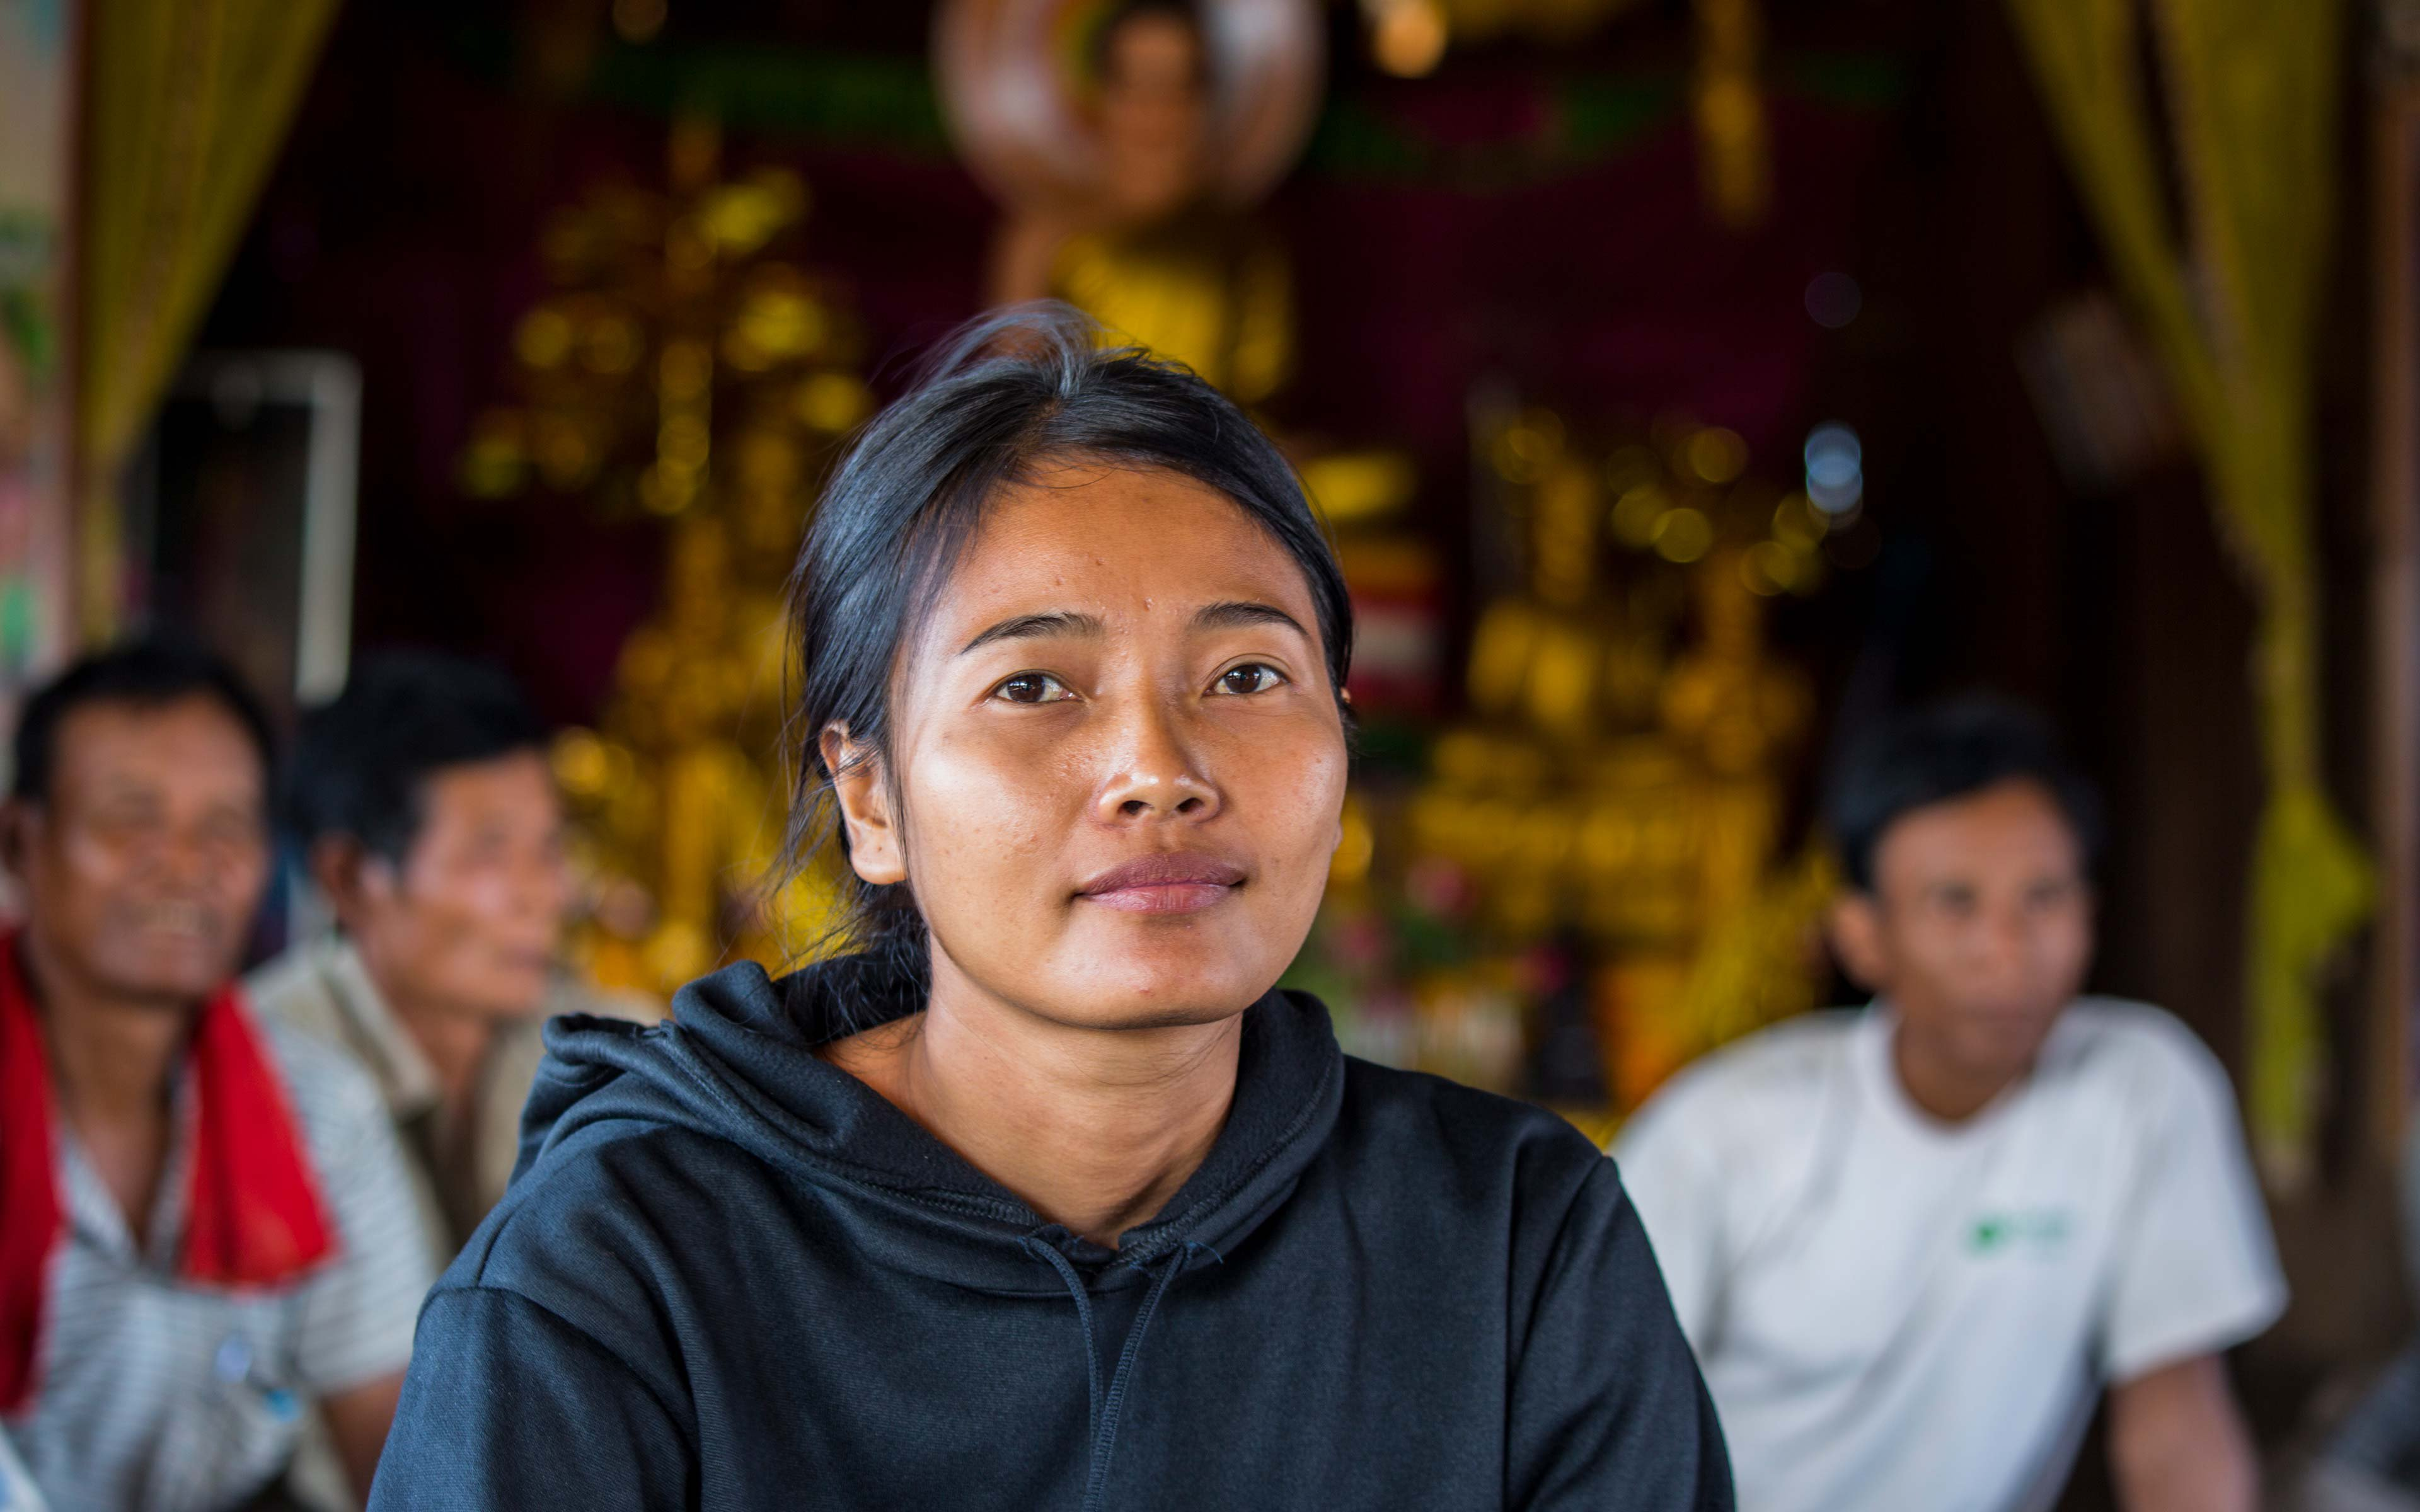 Hong Rany helps to lead a training workshop on fishing regulations at her village pagoda. When she was elected leader of the Community Fishery committee some of the men quit in protest, but since then she says she has re-organized the group and has proven she can lead it effectively.